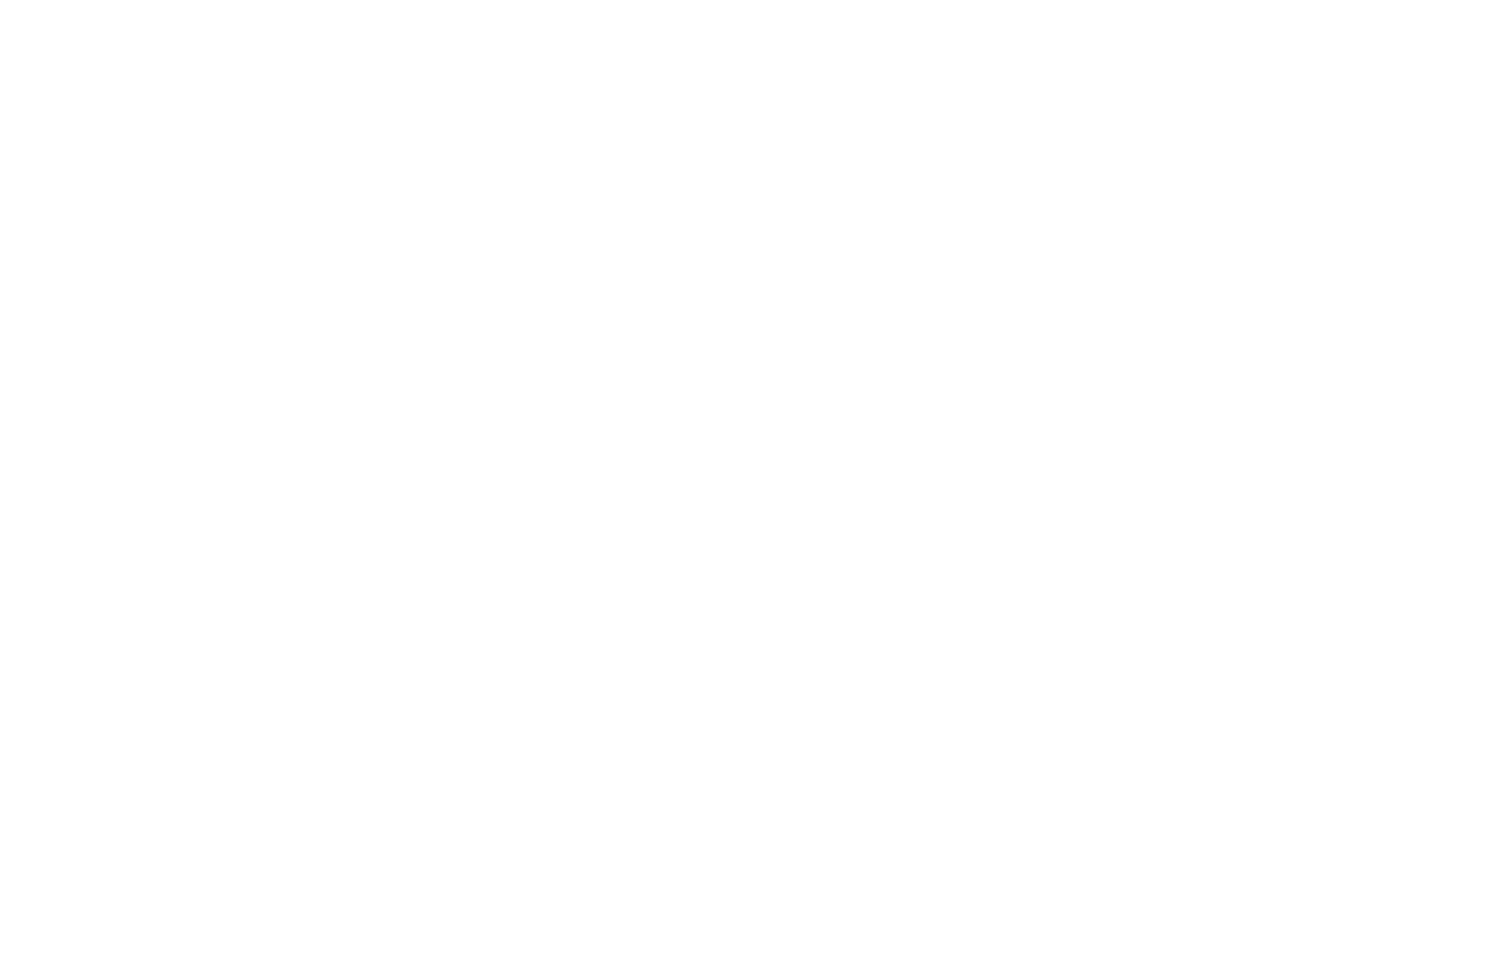 Tall oaks mobile park